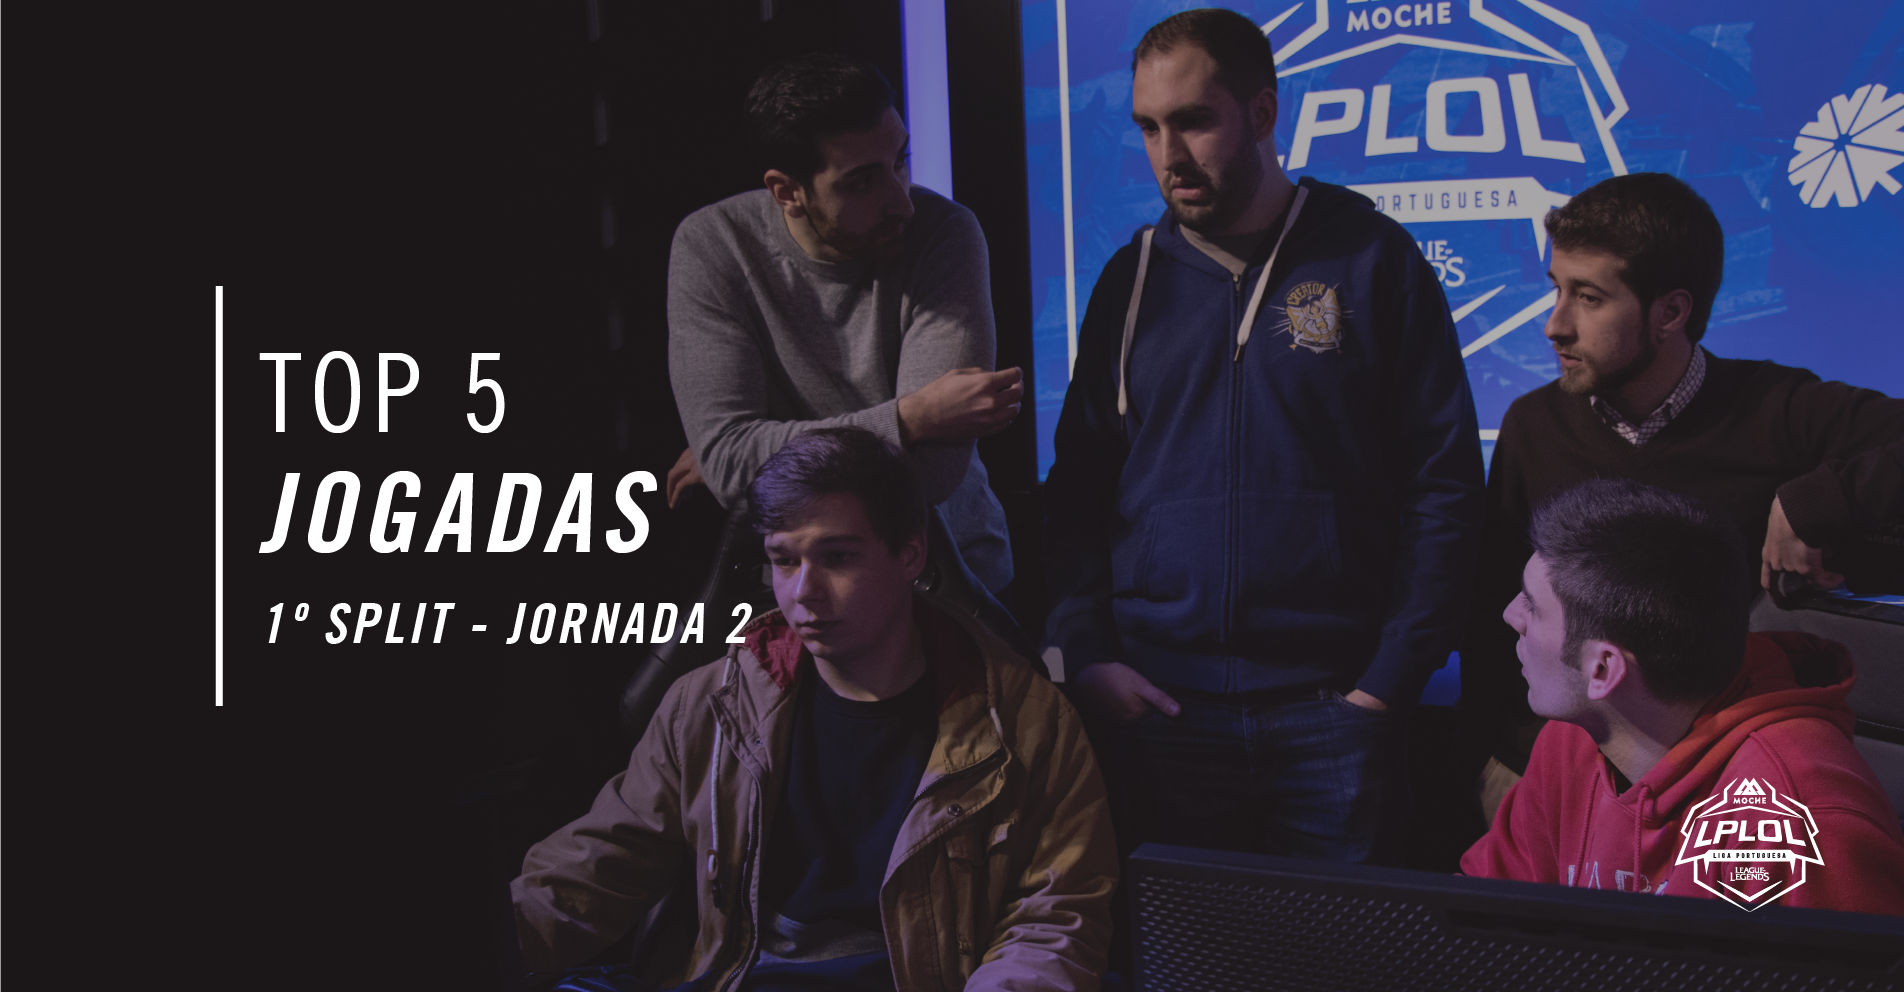 Top 5 Plays Moche LPLOL 2018 - 1º Split - Jornada 2